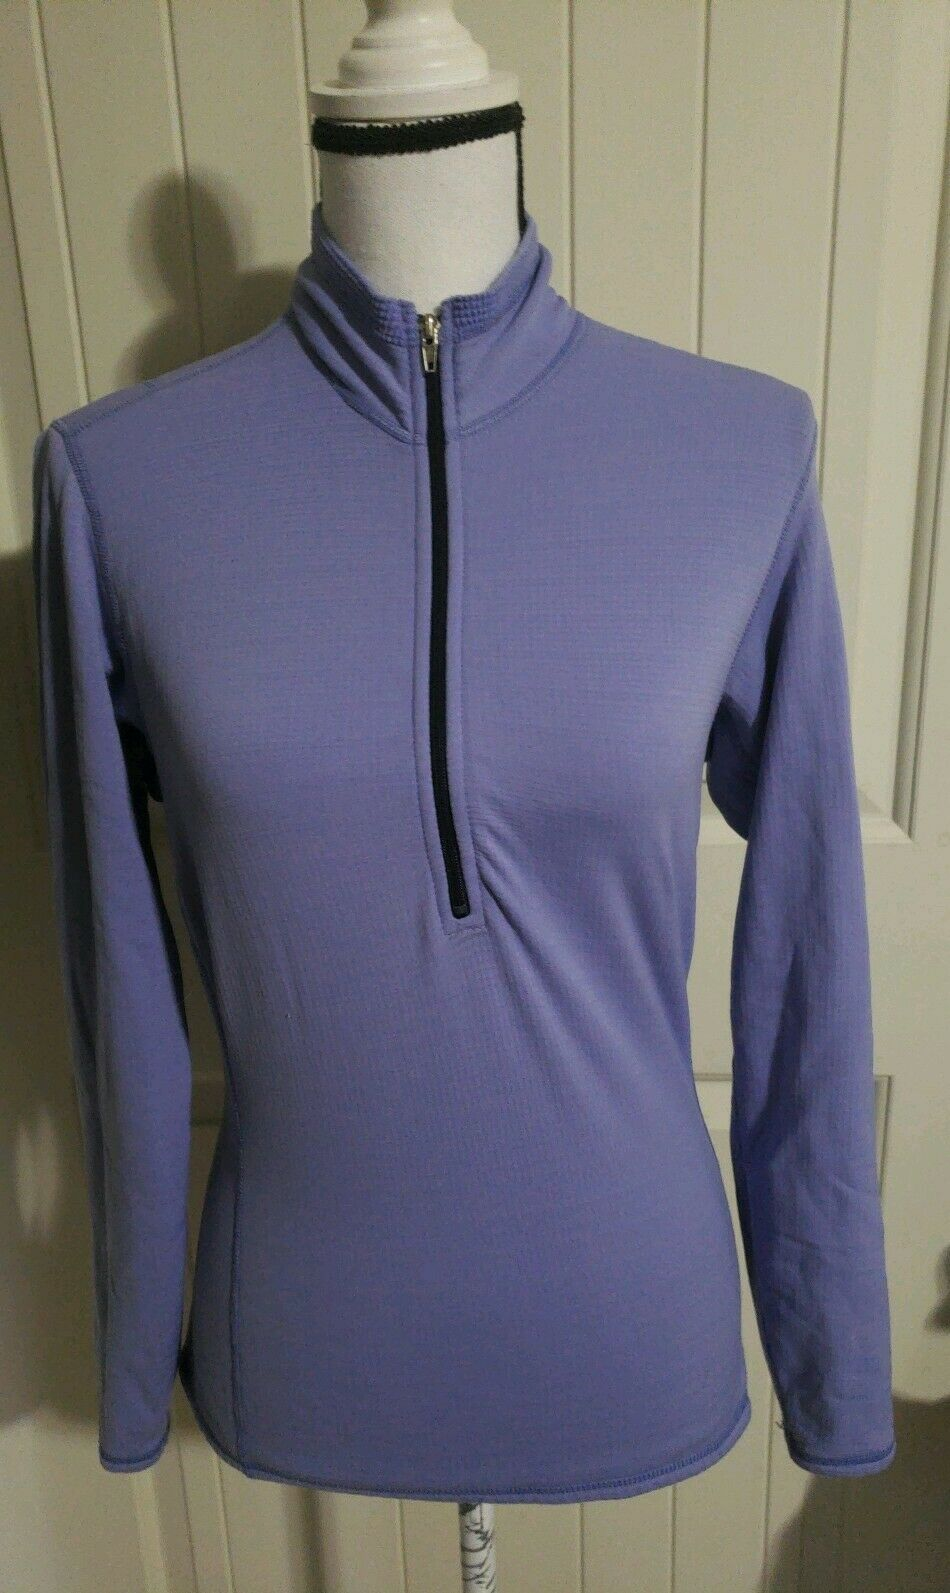 Patagonia Periwinkle Purple Pull Pull Pull Over Sweater Women Size Small S bb6b54